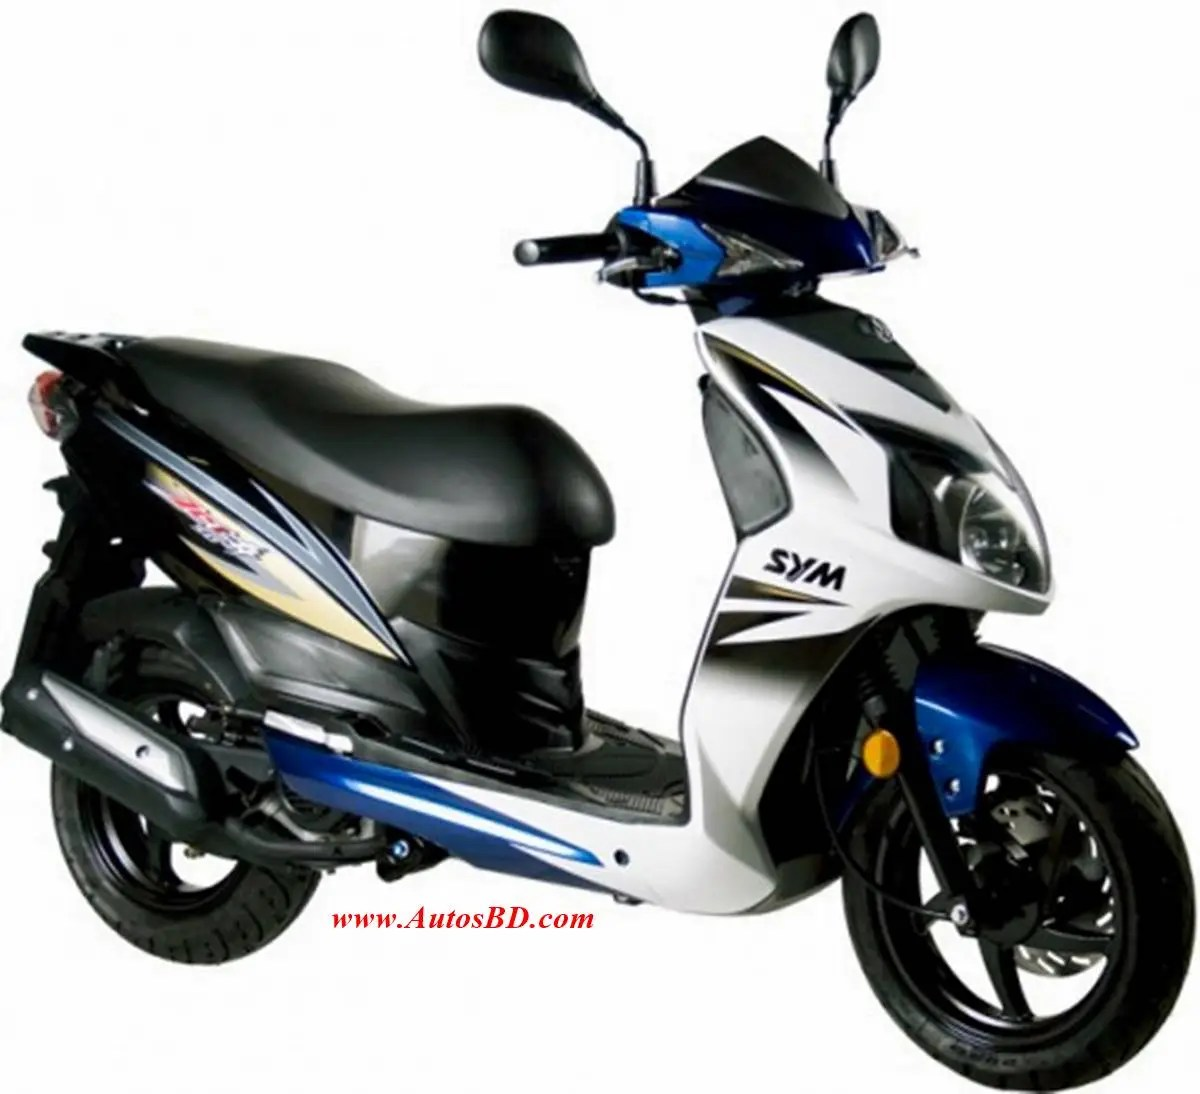 SYM JET 4 125cc Scooter Specification